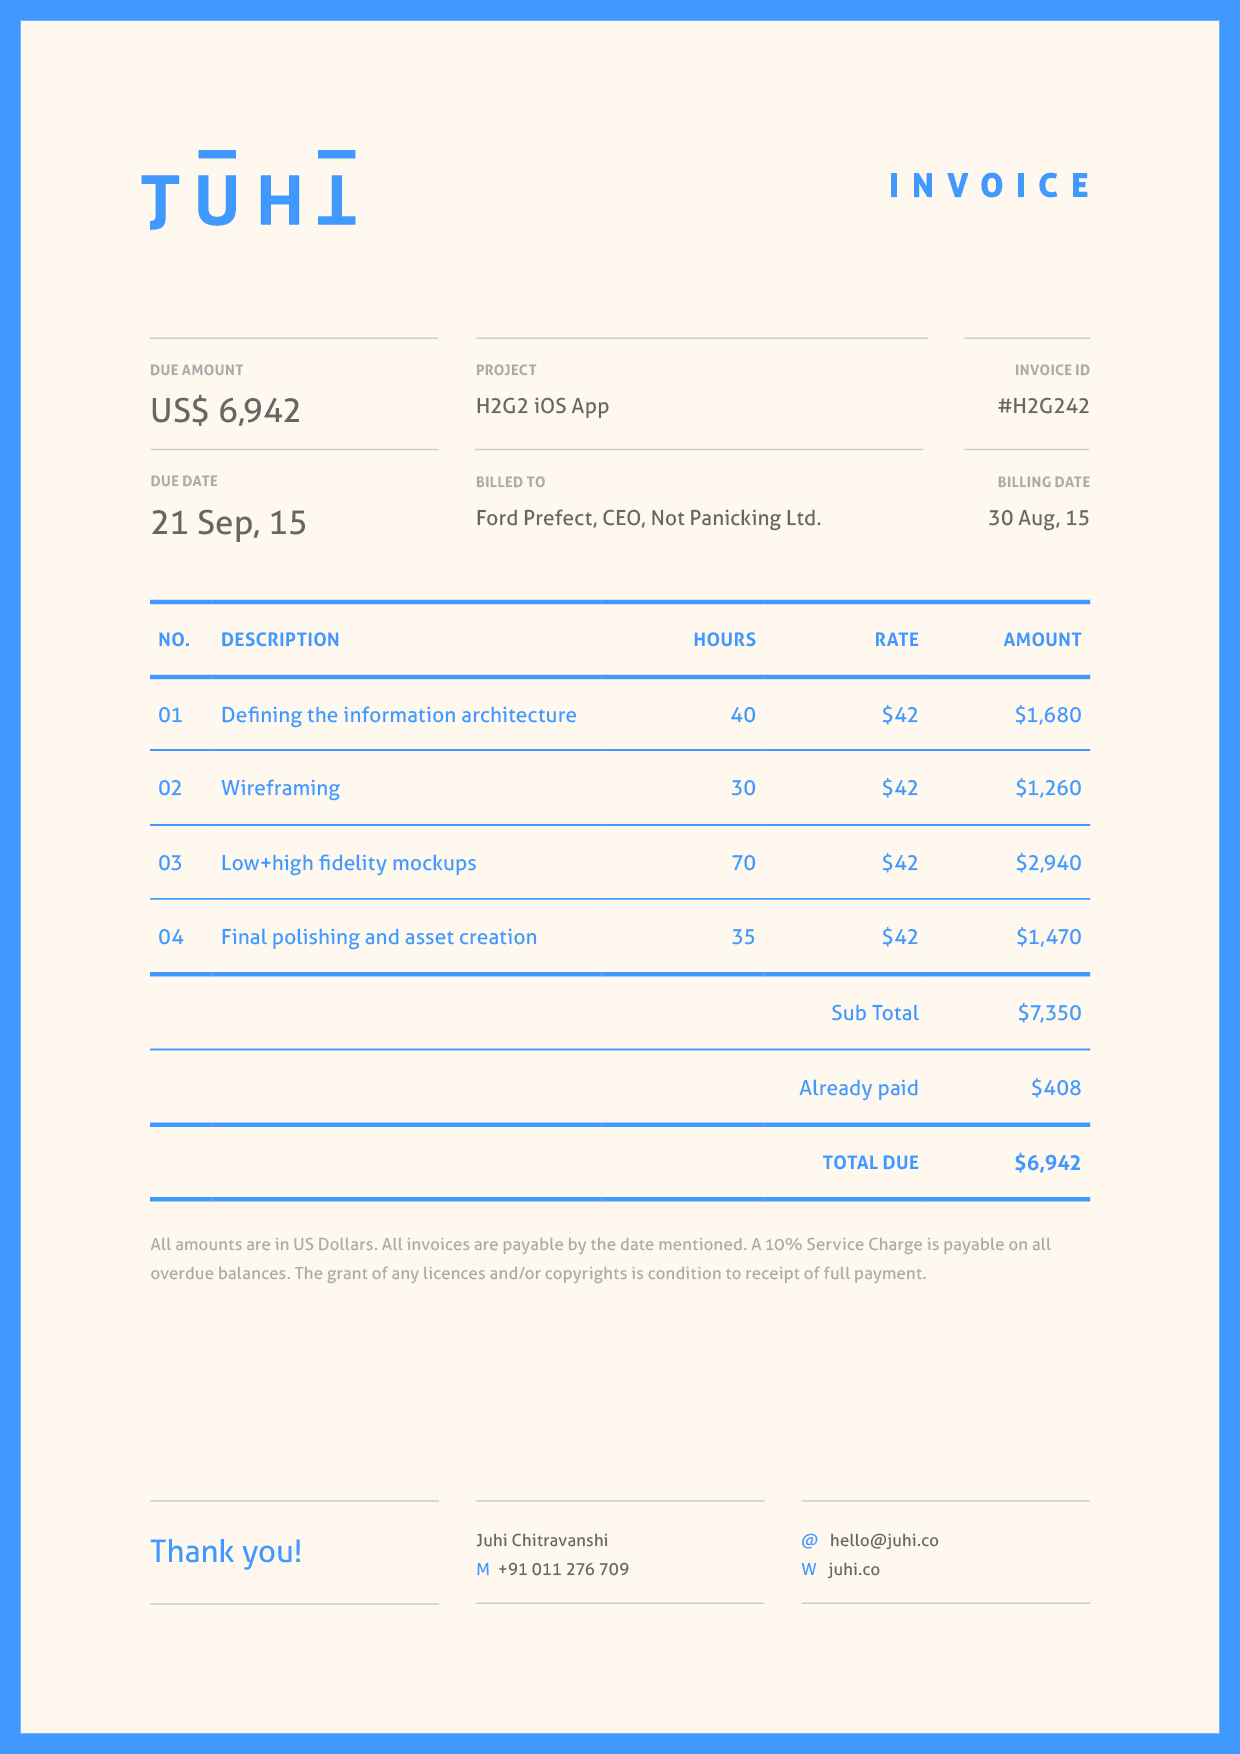 Coachoutletonlineplusus  Scenic Dont Hold Back On Your Invoice  Inspiring Designs  With Remarkable Invoice By Juhi Chitravanshi Follow With Attractive Non Profit Receipt Template Also Receipt Of Acknowledgement Letter In Addition Usps Return Receipt Tracking And Medical Receipt Template Word As Well As Receipt For Hot Wings Additionally Tenant Receipt Template From Inspirationfeedcom With Coachoutletonlineplusus  Remarkable Dont Hold Back On Your Invoice  Inspiring Designs  With Attractive Invoice By Juhi Chitravanshi Follow And Scenic Non Profit Receipt Template Also Receipt Of Acknowledgement Letter In Addition Usps Return Receipt Tracking From Inspirationfeedcom